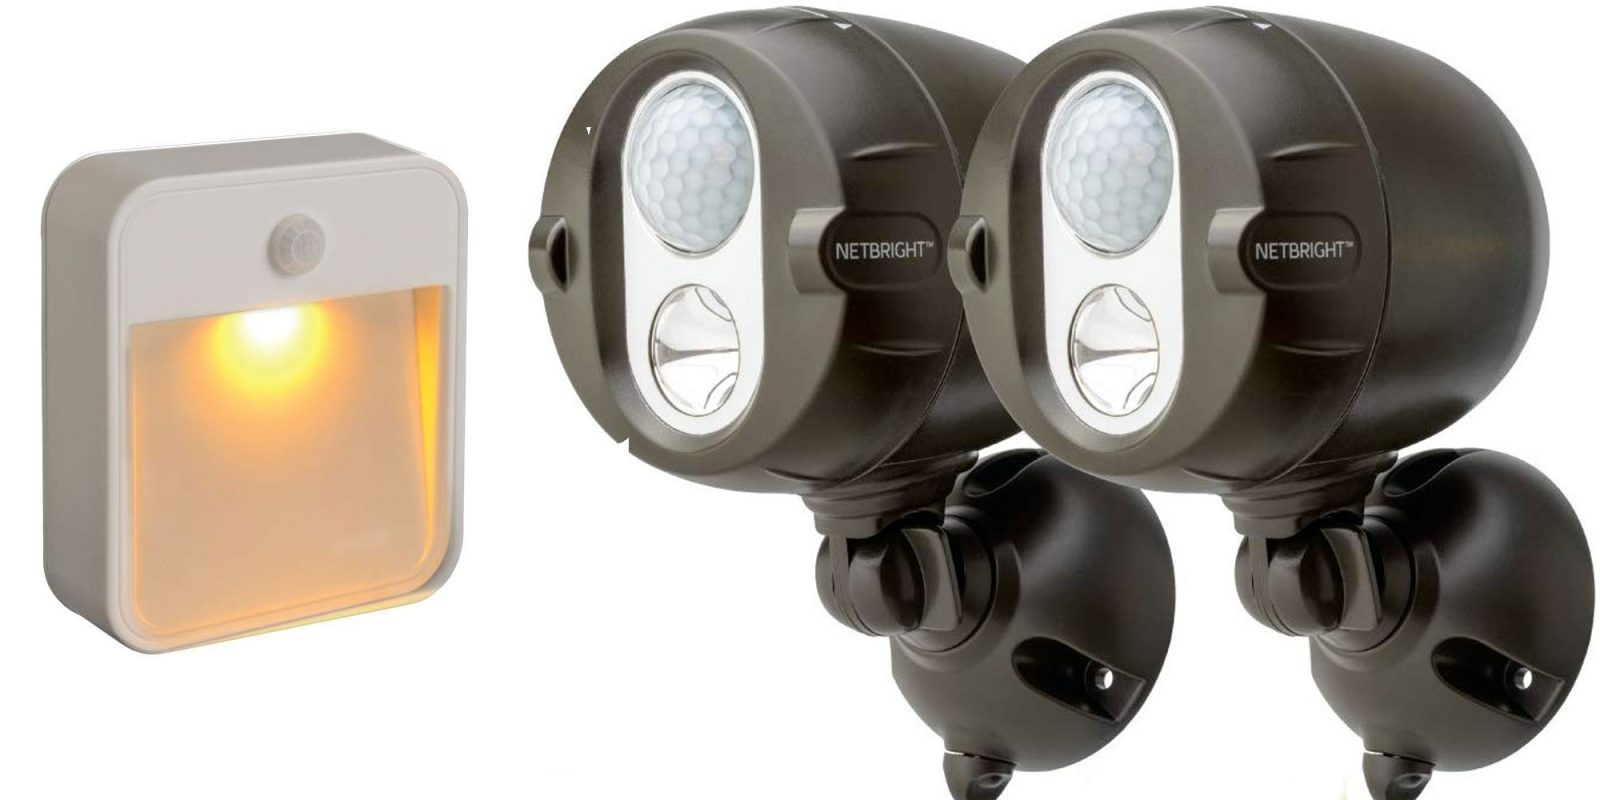 Save big on Mr. Beams LED lights for inside and out from $6 at Amazon